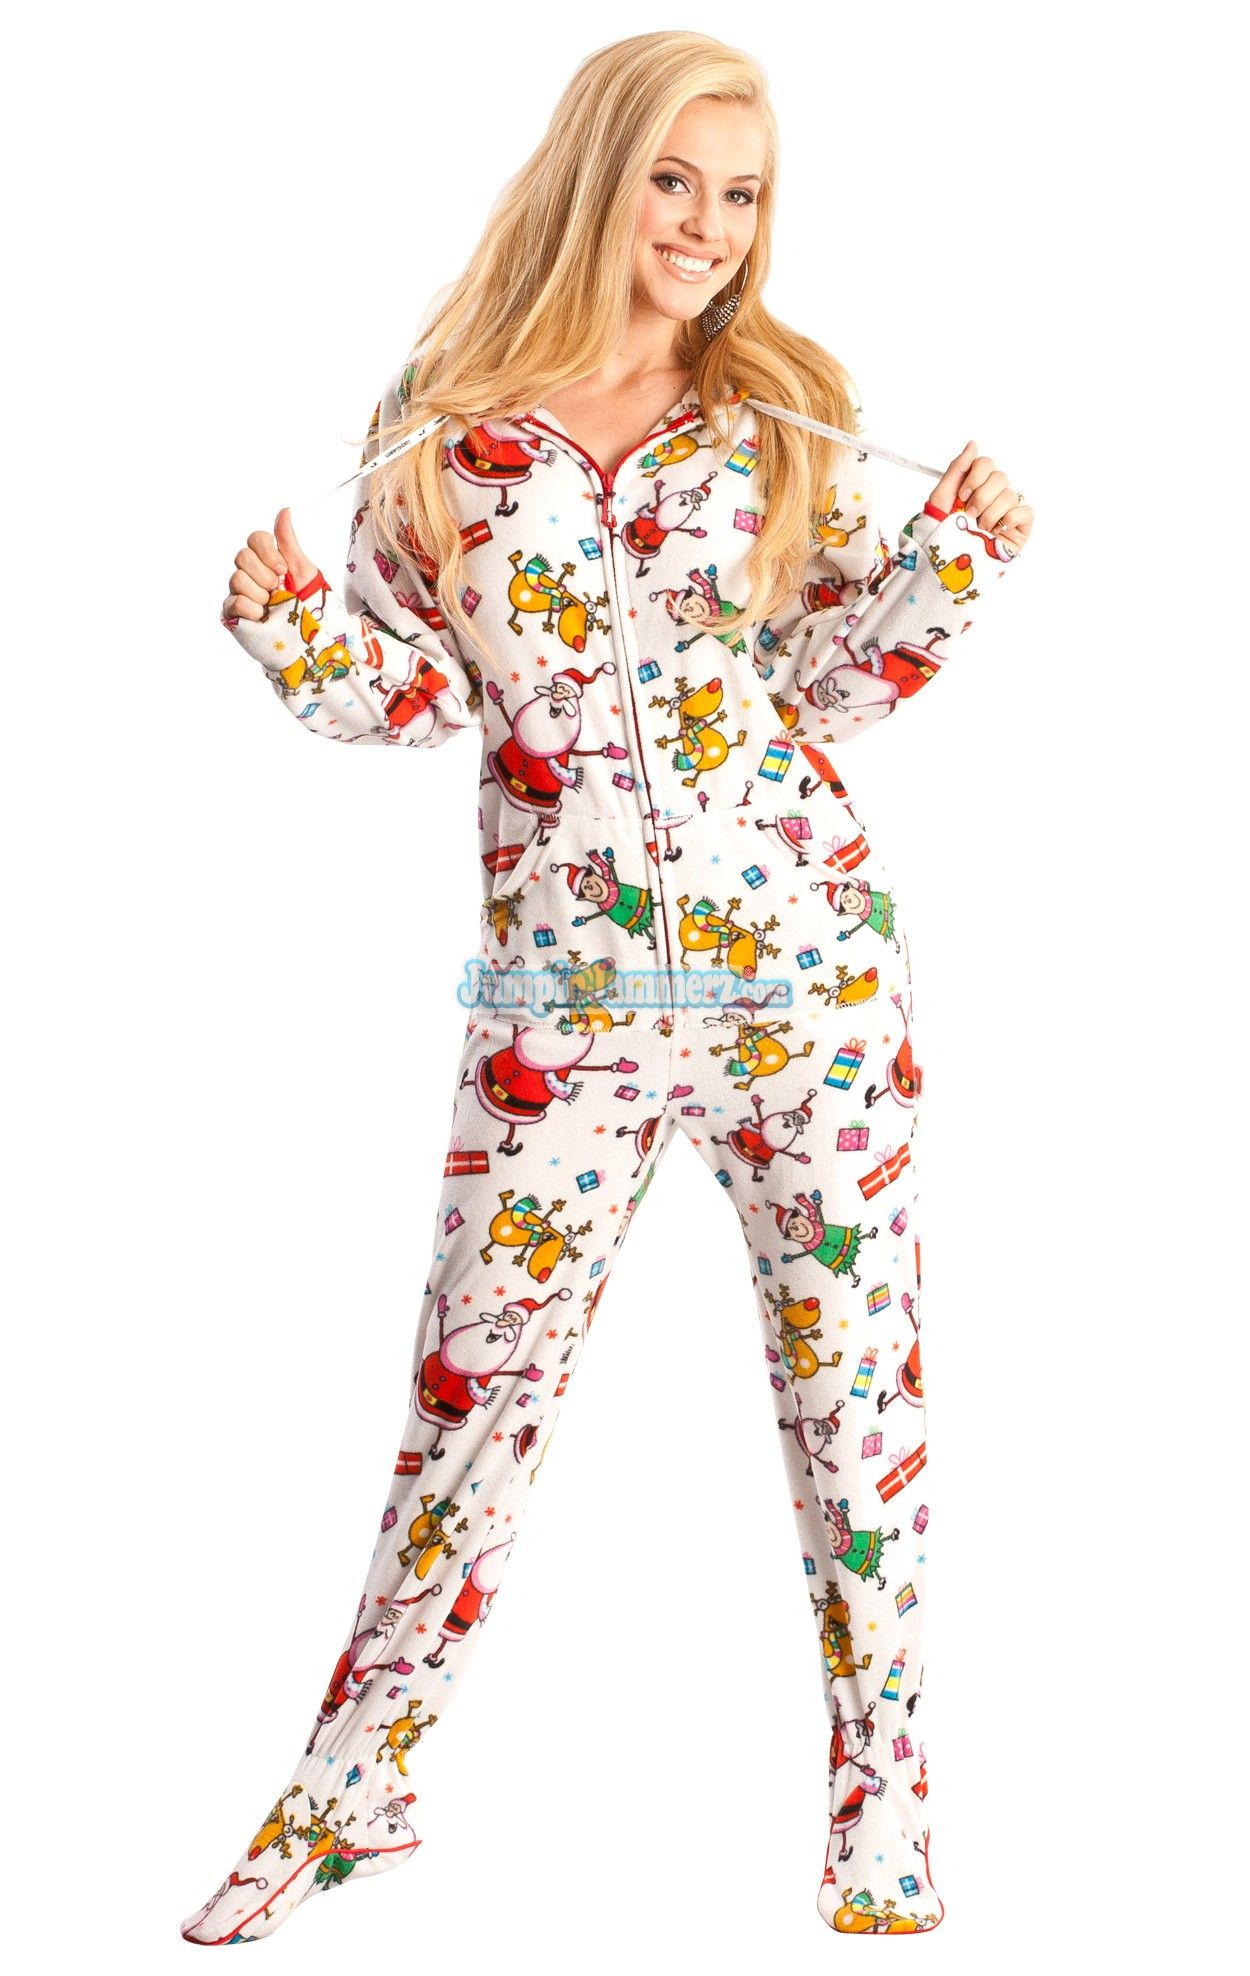 And for even more seasonal appeal, be sure to find the perfect Christmas onesie for adults that will put visions of sugarplums into your head. Be sure to add holiday accessories, decor, and more, and build a festive look that's sure to make the season a success! Christmas pajamas from Kohl's take your family's festive wardrobe to a whole new level.